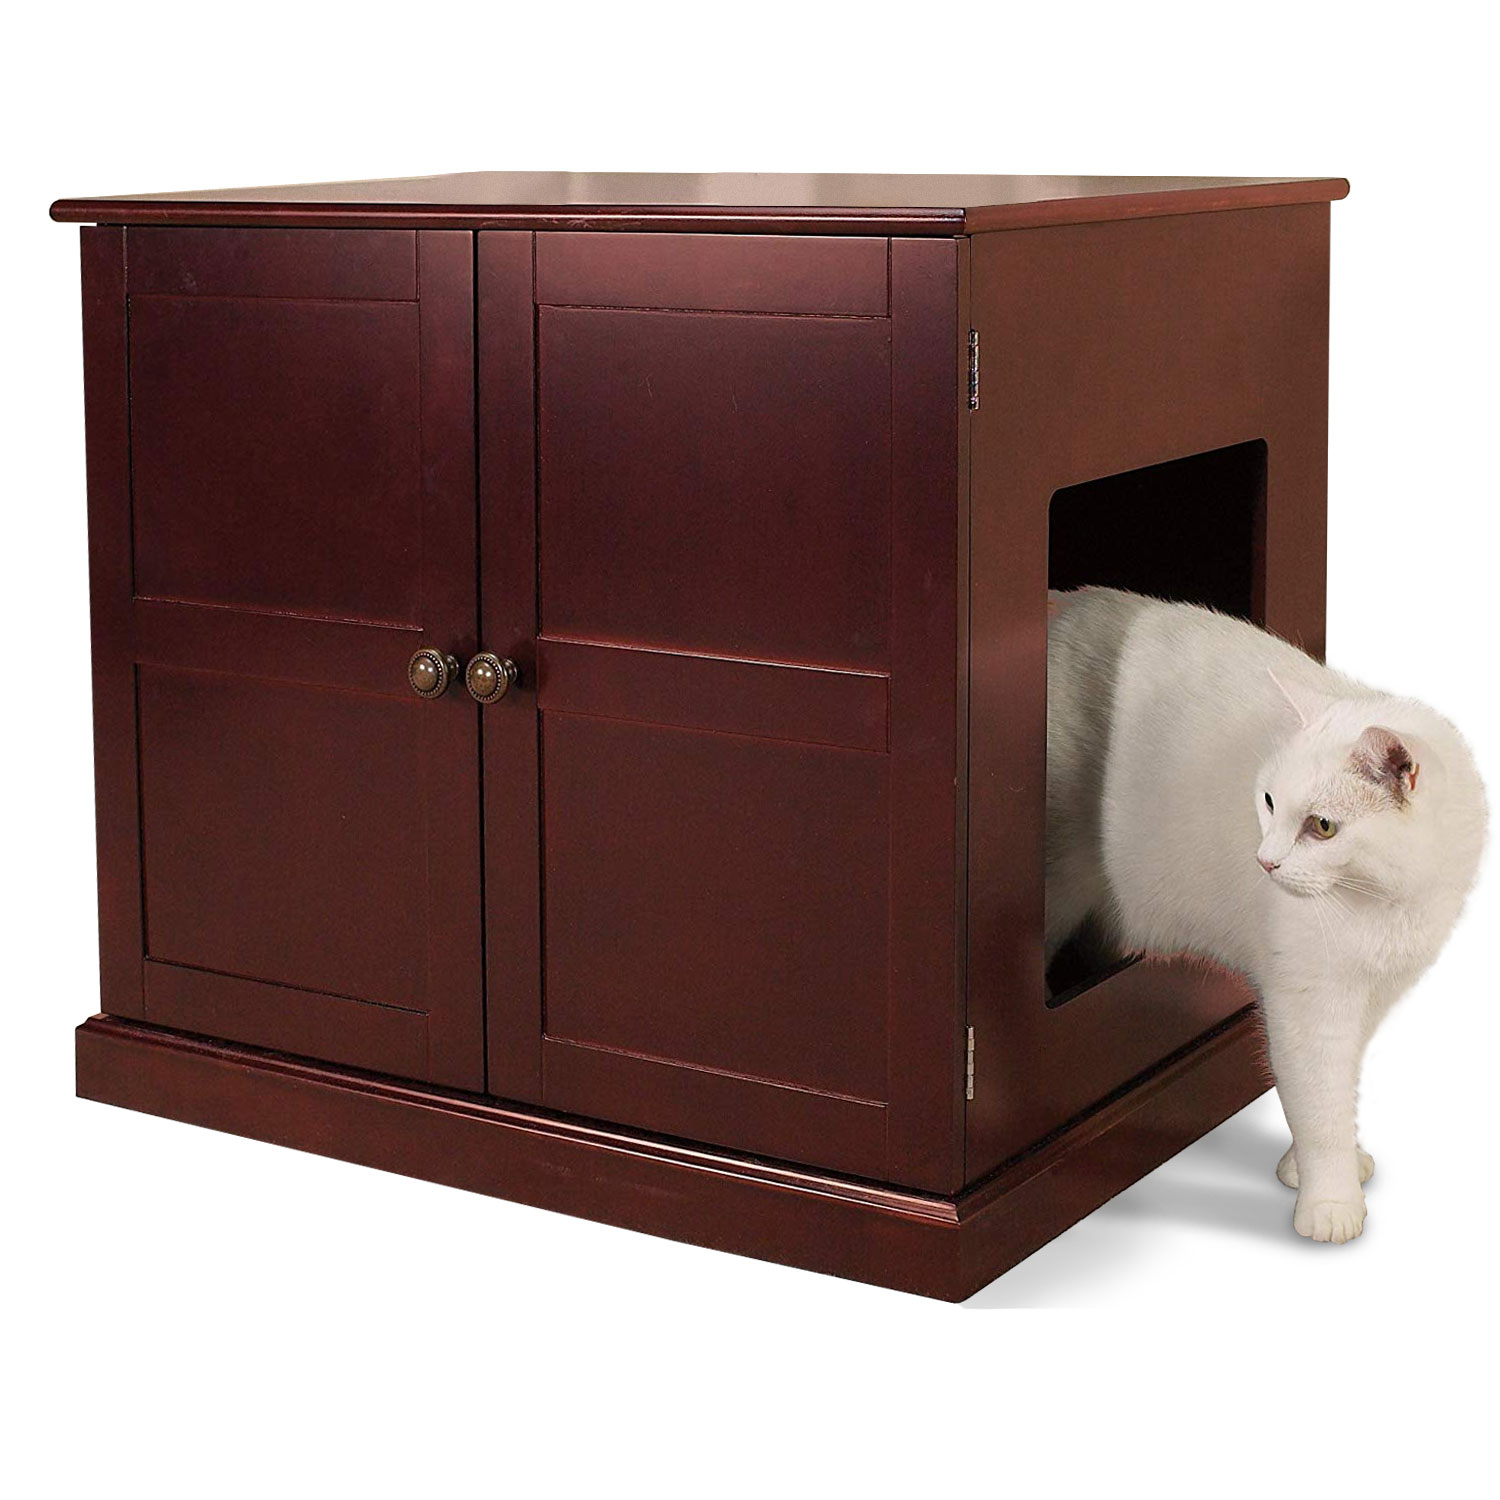 Meow Town Concord Litter Box Cabinet Furniture for Cats and Kittens, Mahogany